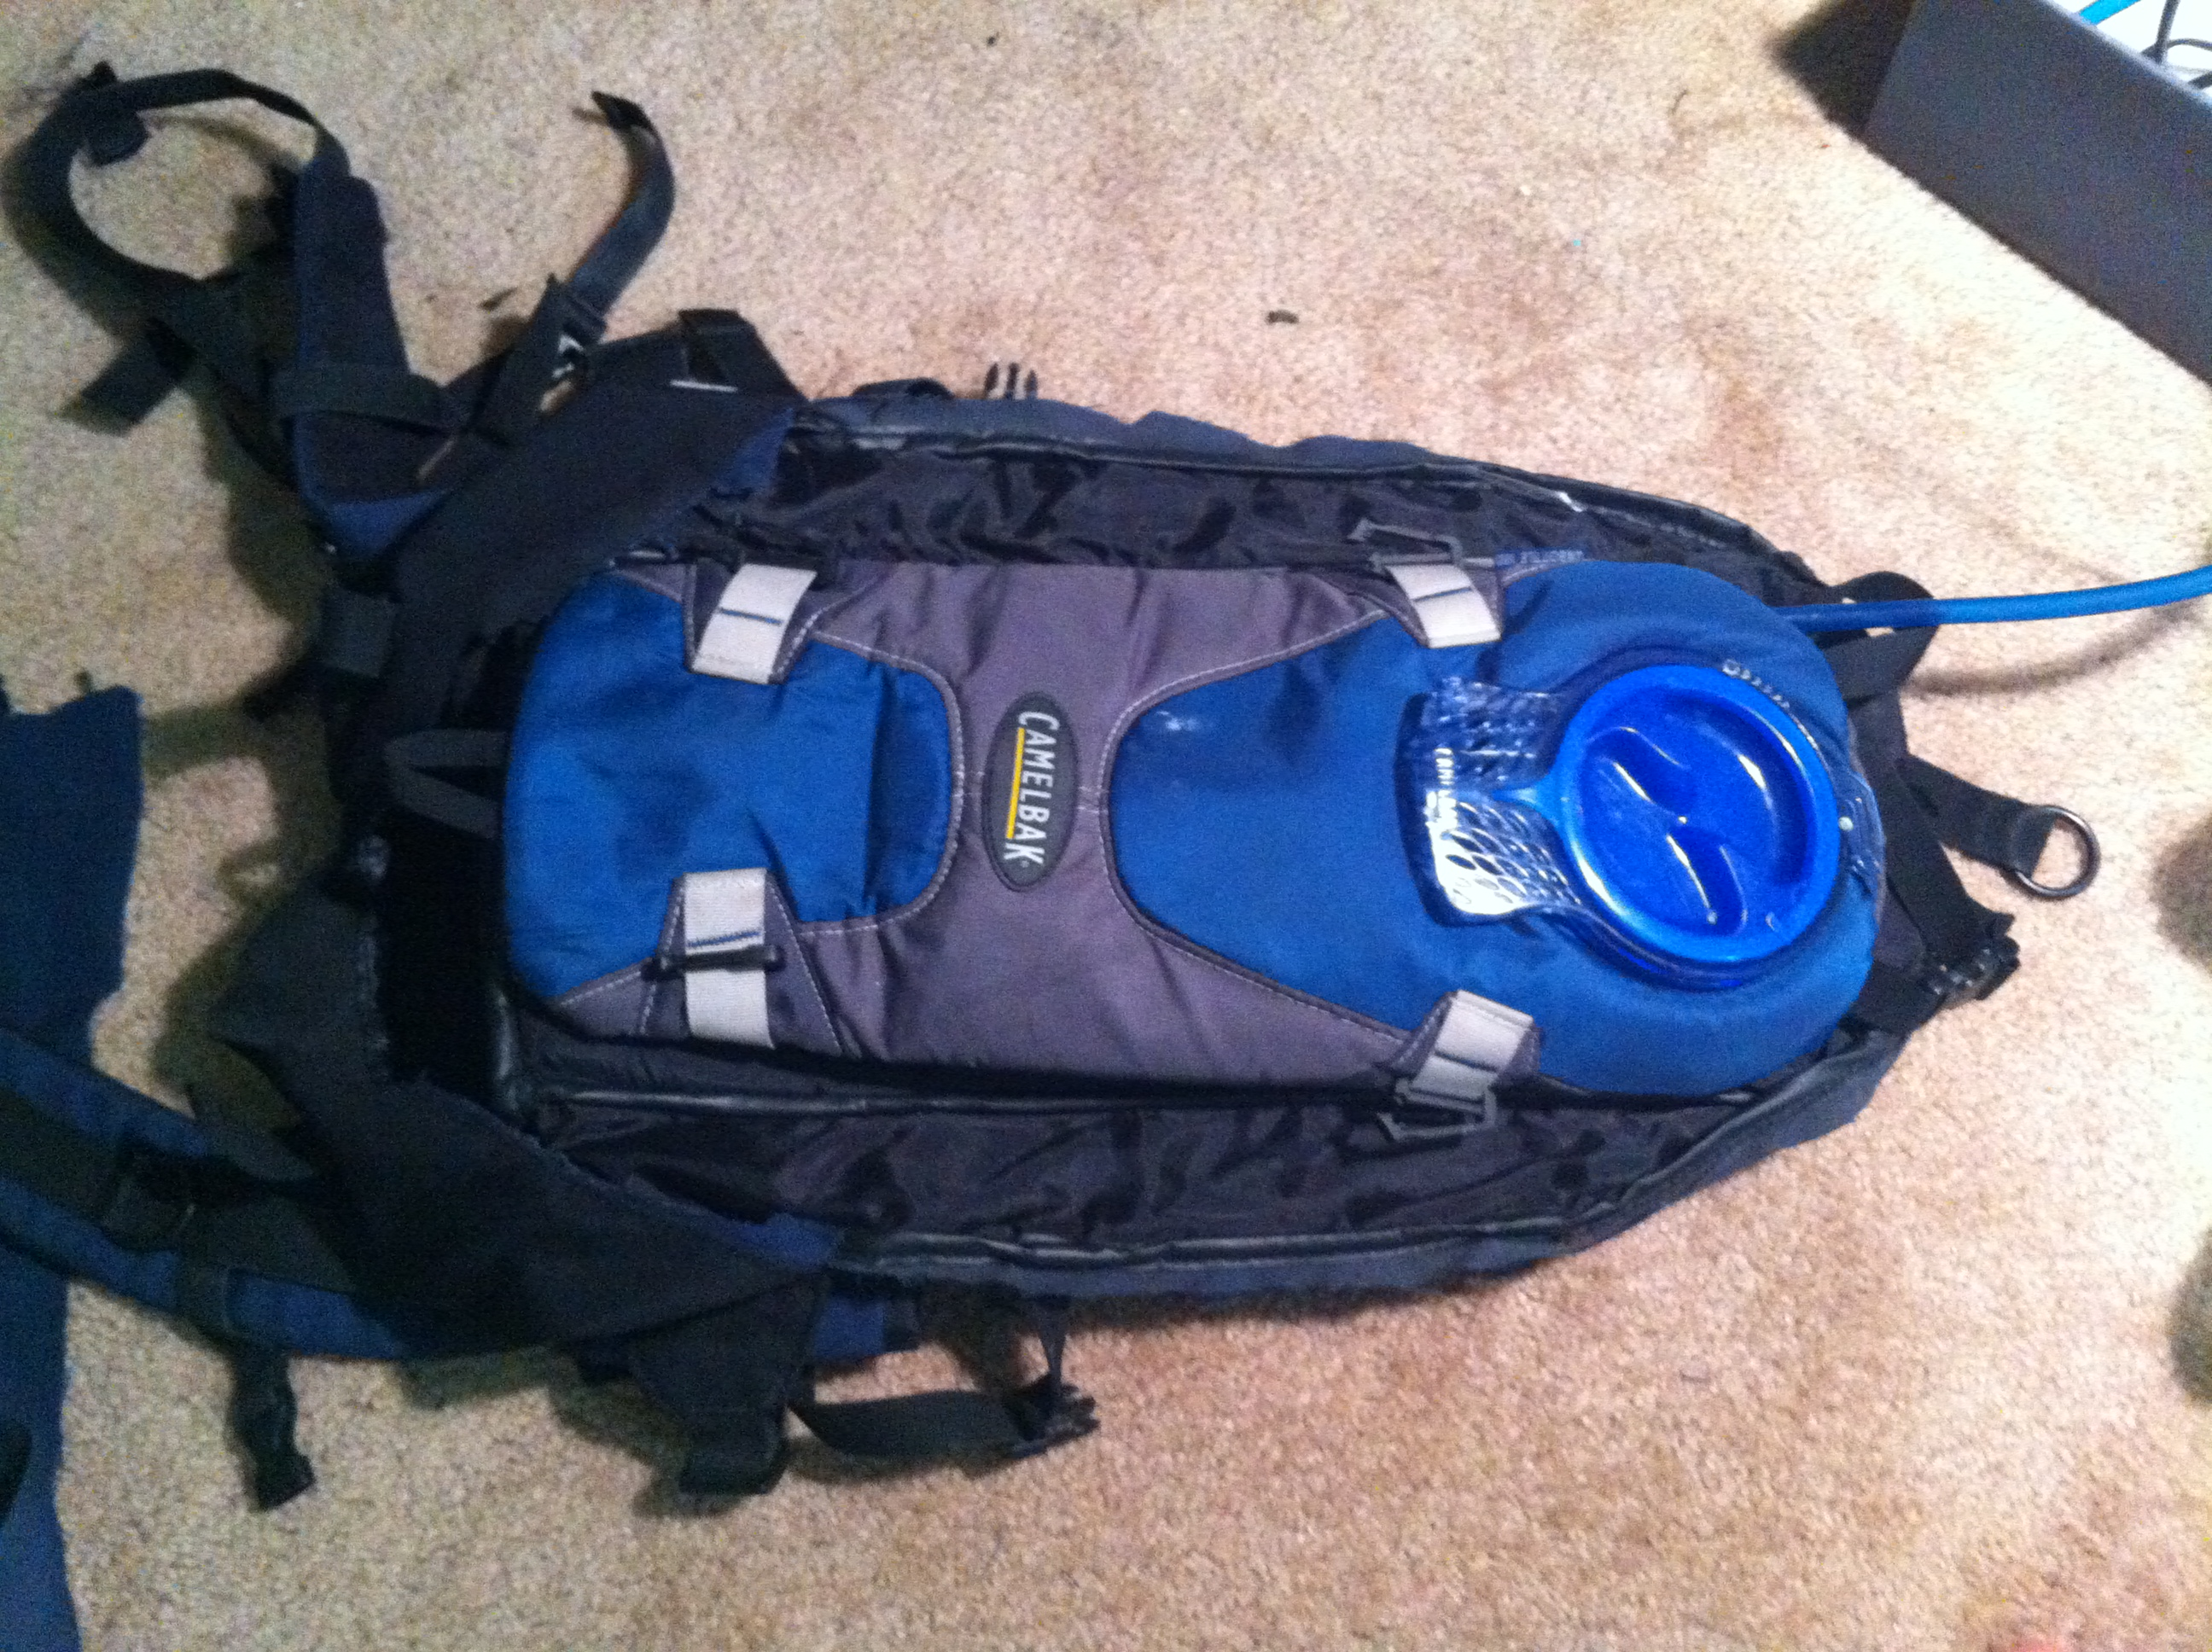 Hydration pack for sizing